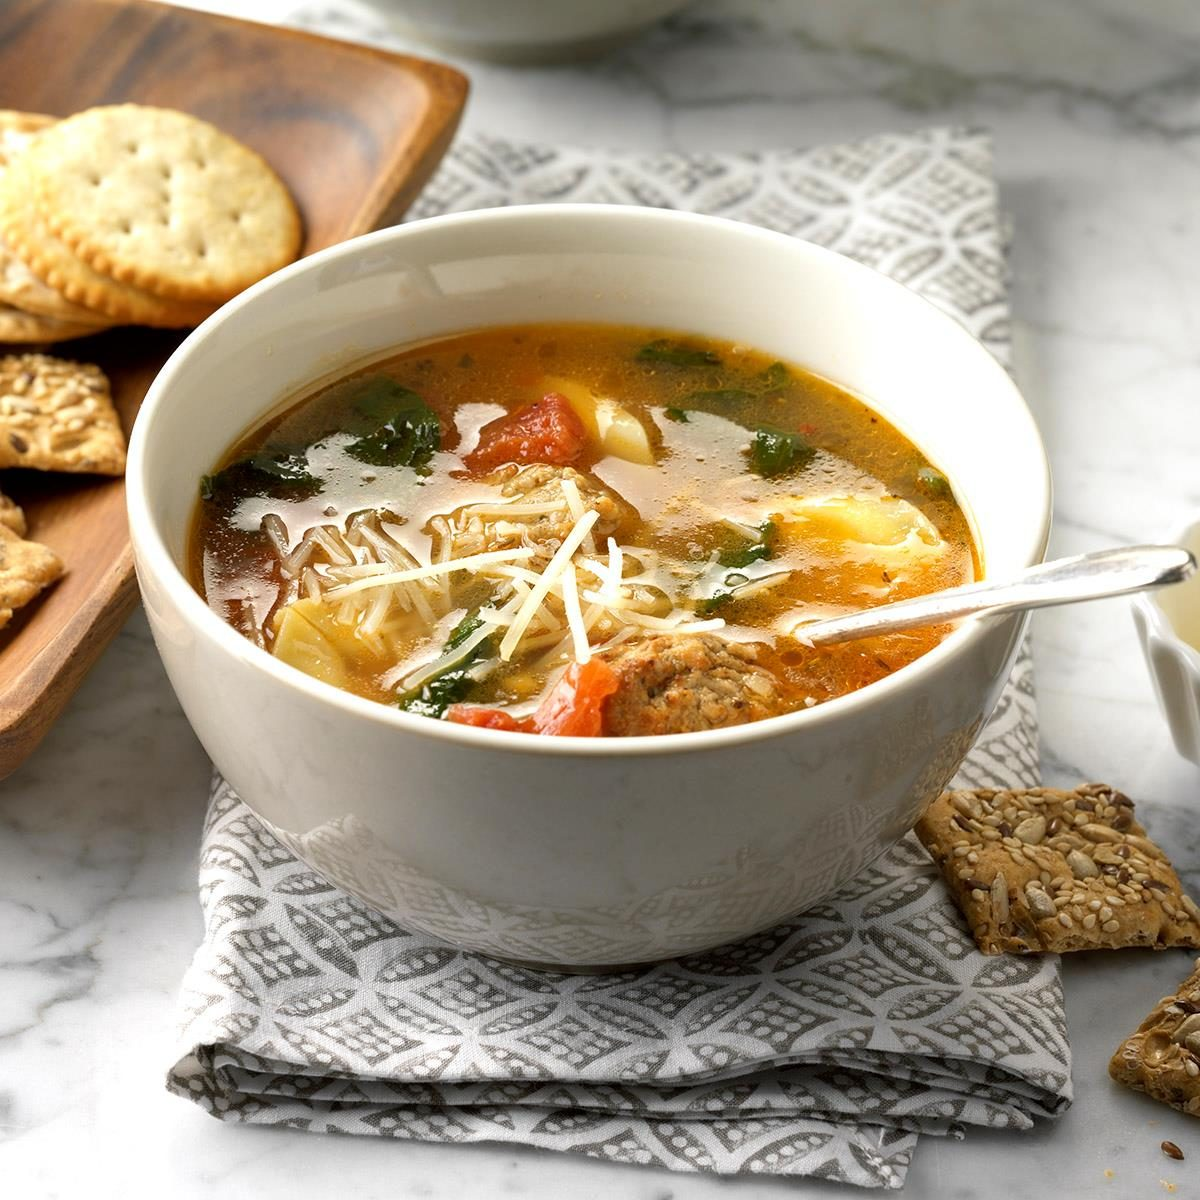 Texas: Easy Tortellini Spinach Soup